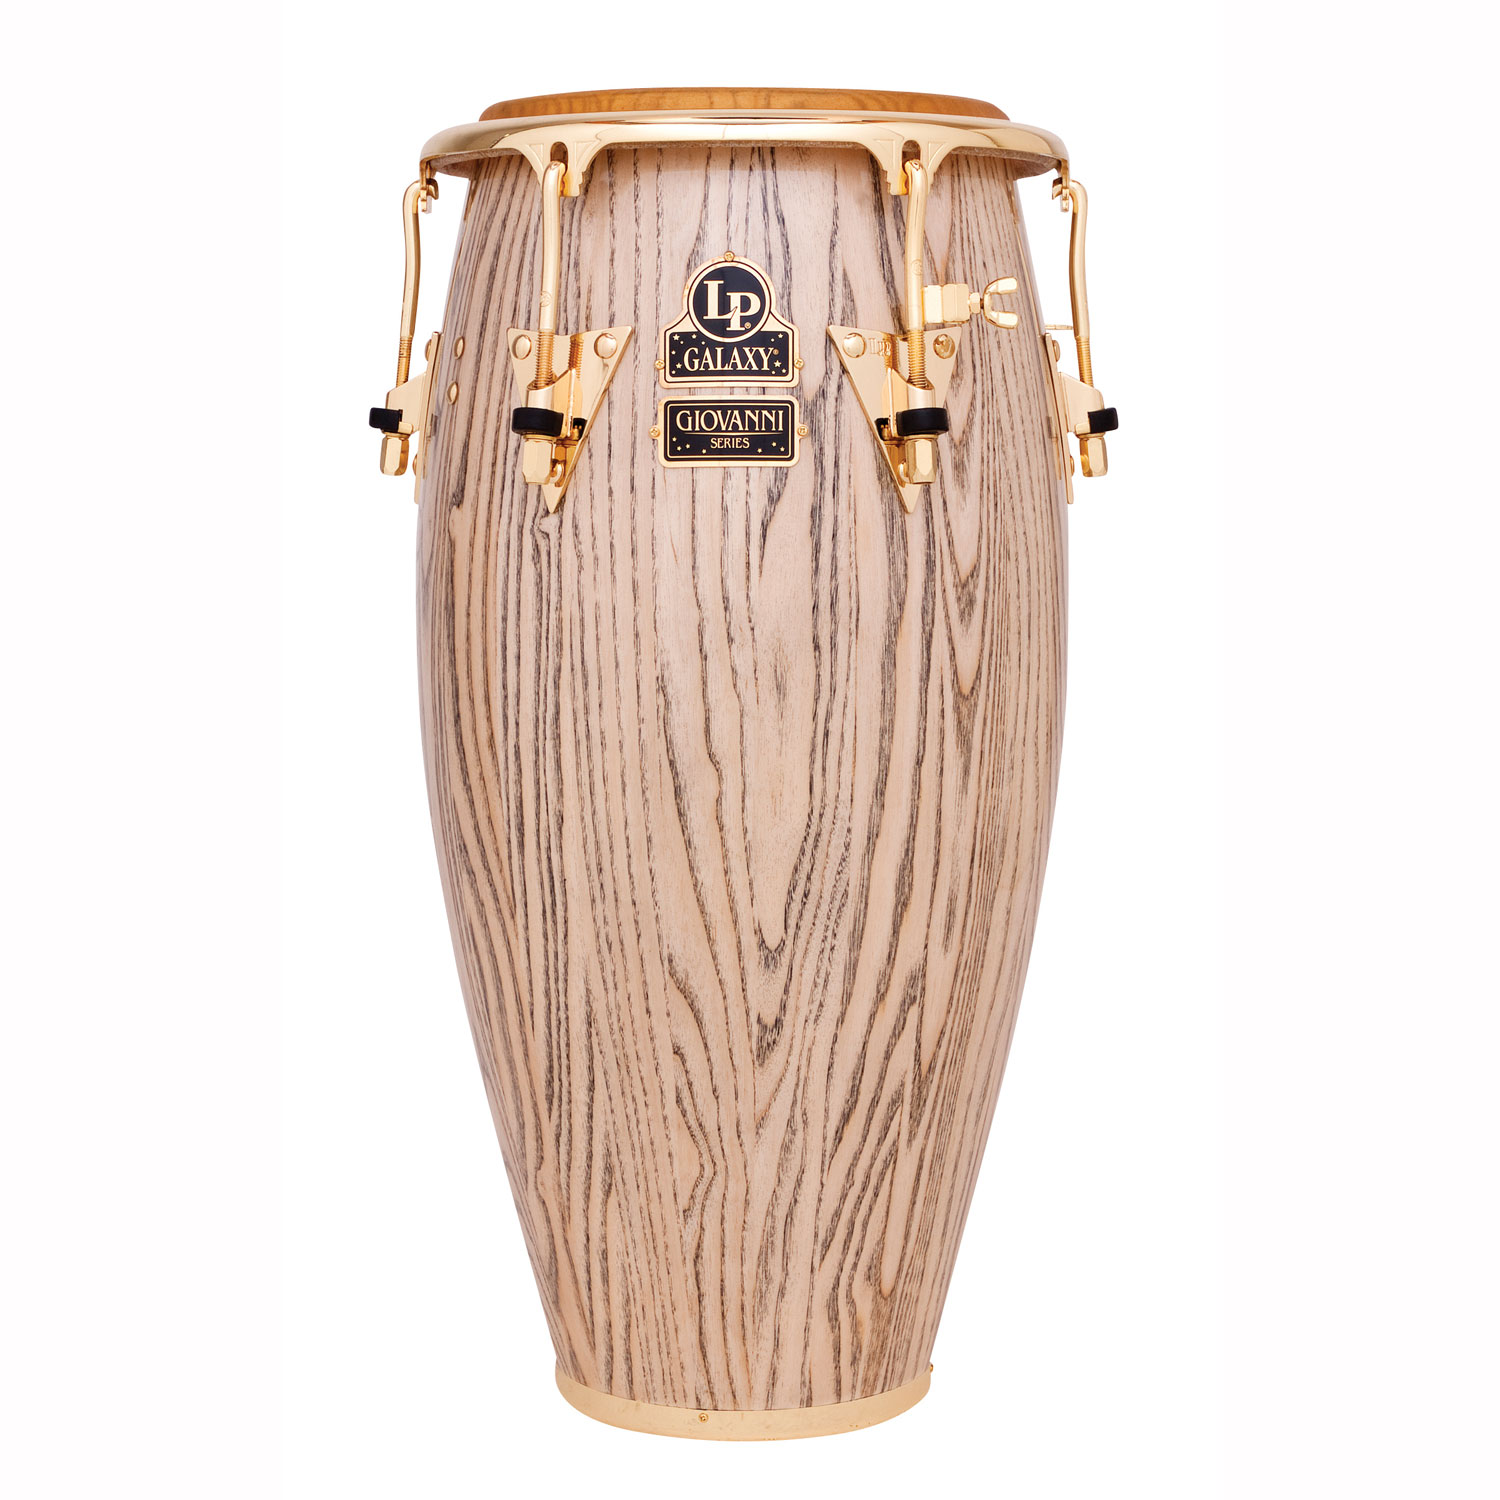 "LP 12.5"" Galaxy Giovanni Tumba Conga with Gold Hardware"